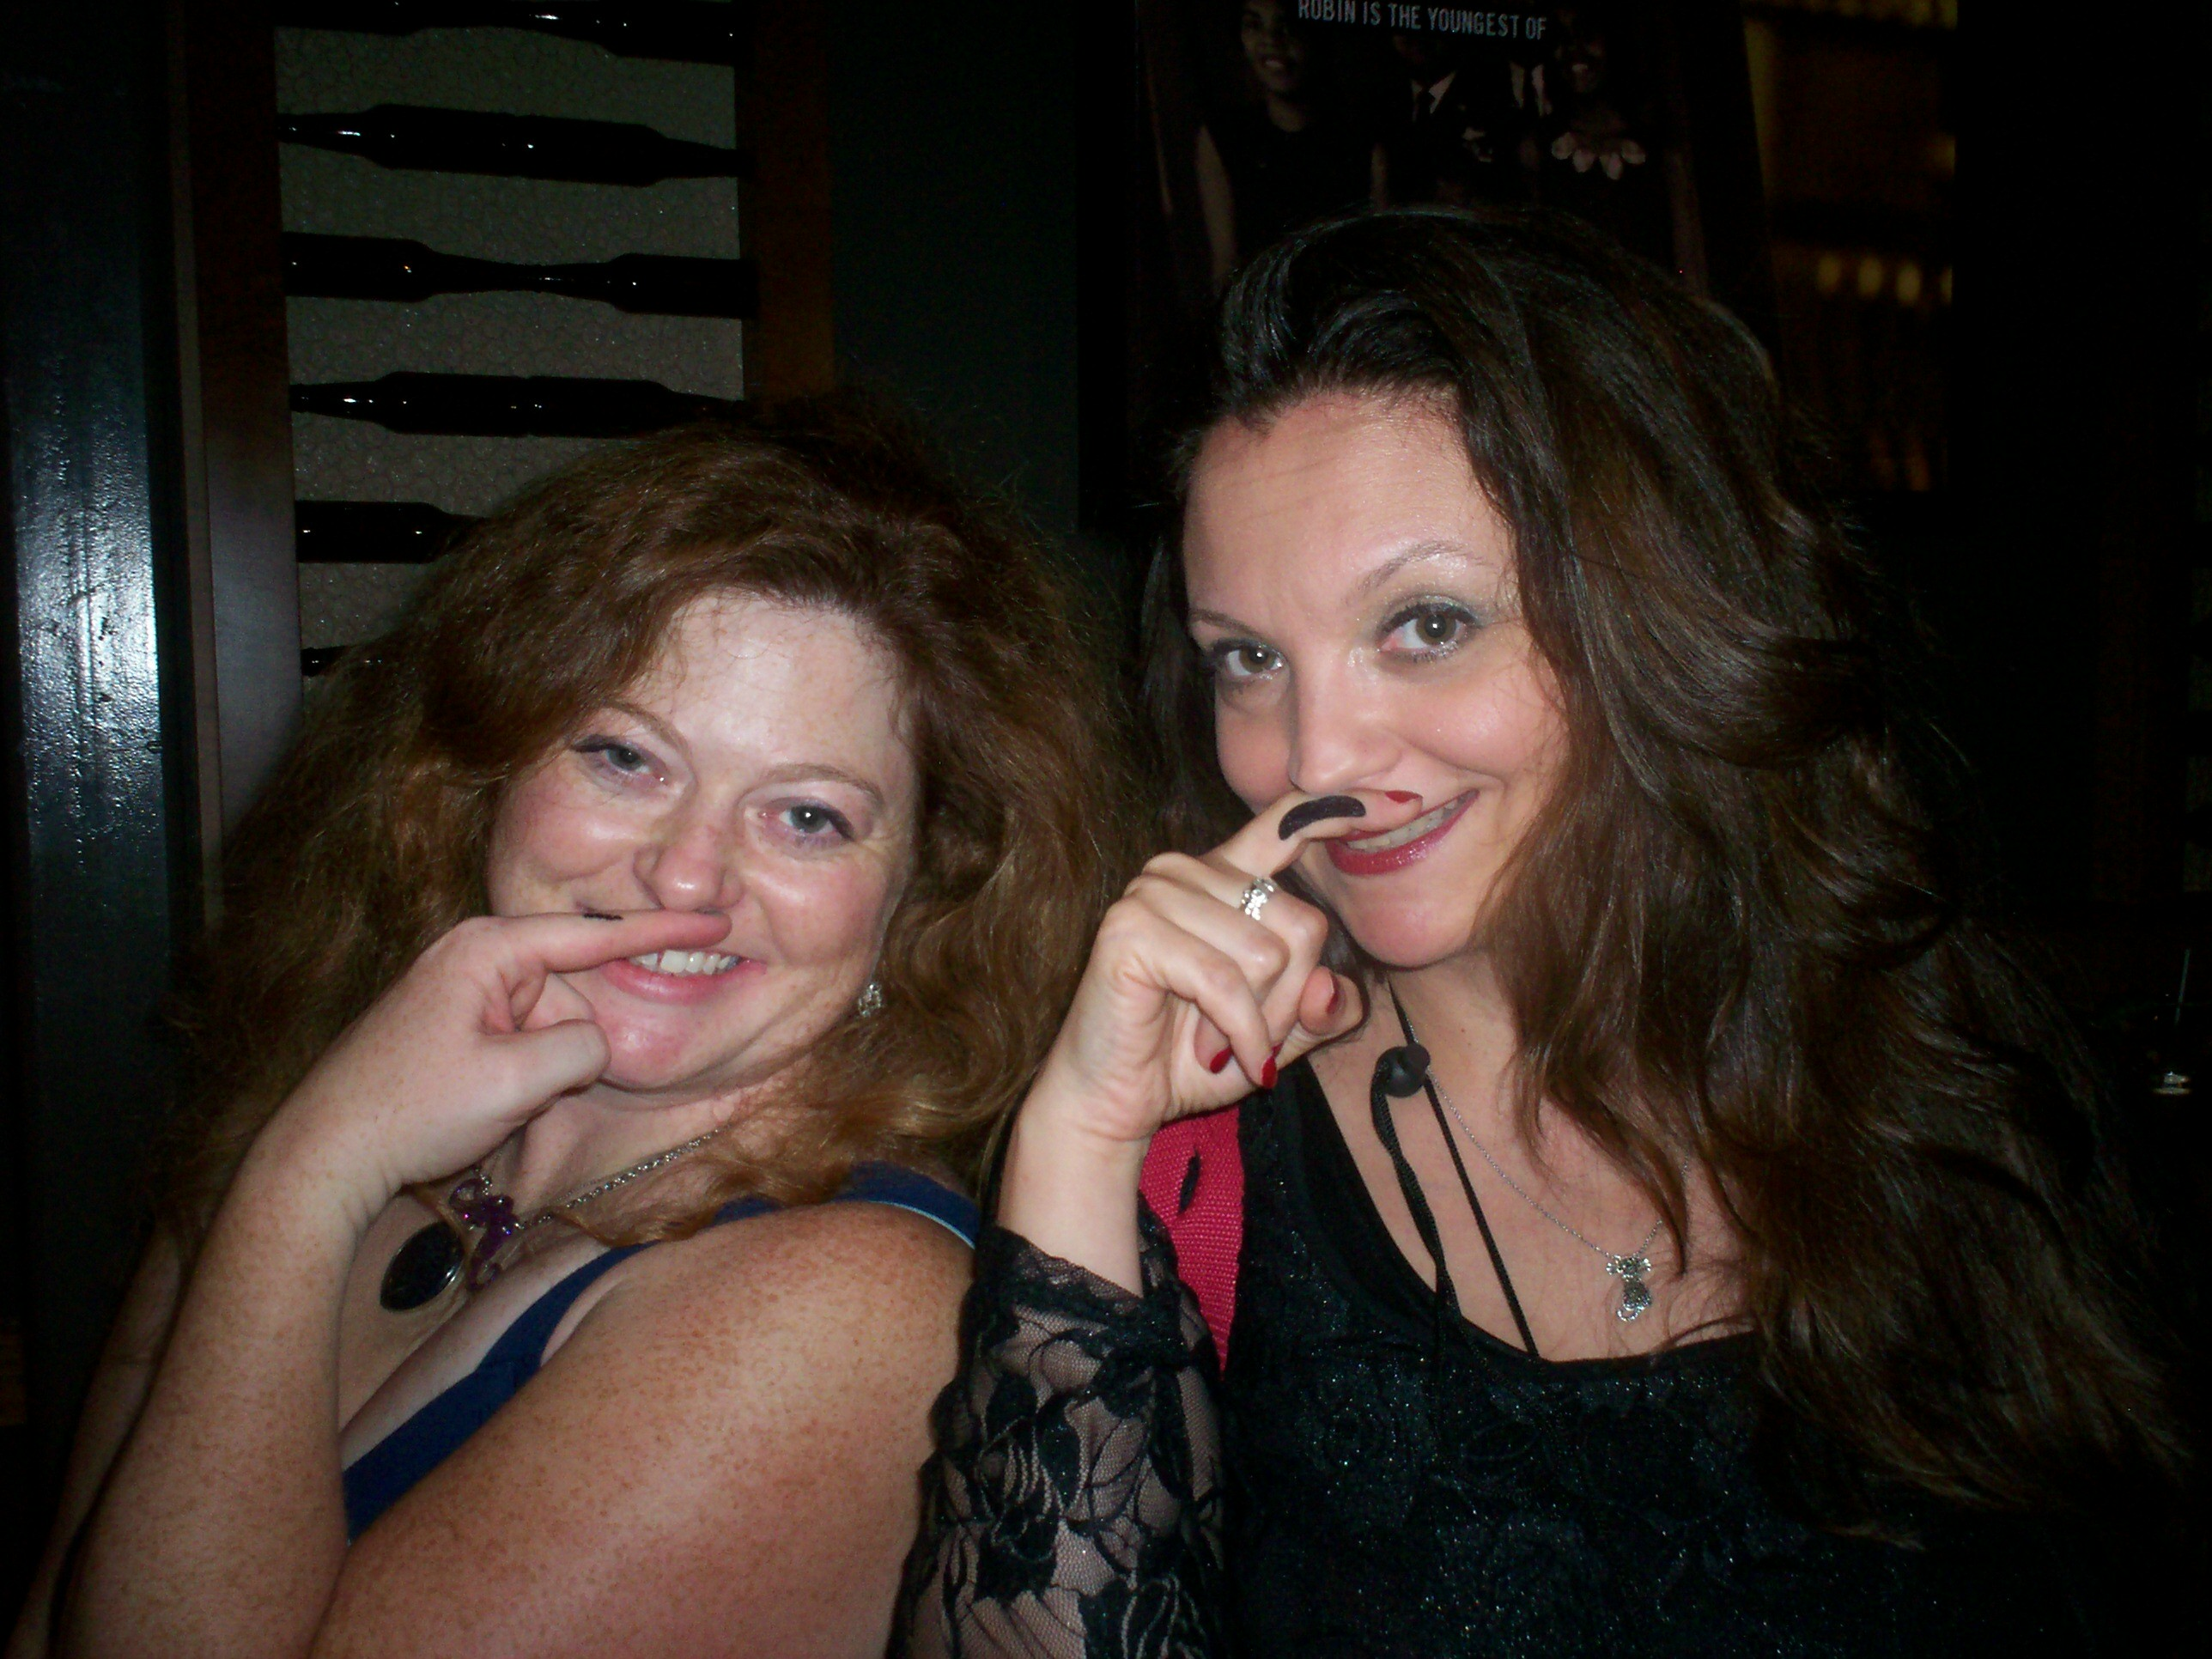 Melonie of Chicago North and Sav ~ Mustaches and Mayhem ensue!